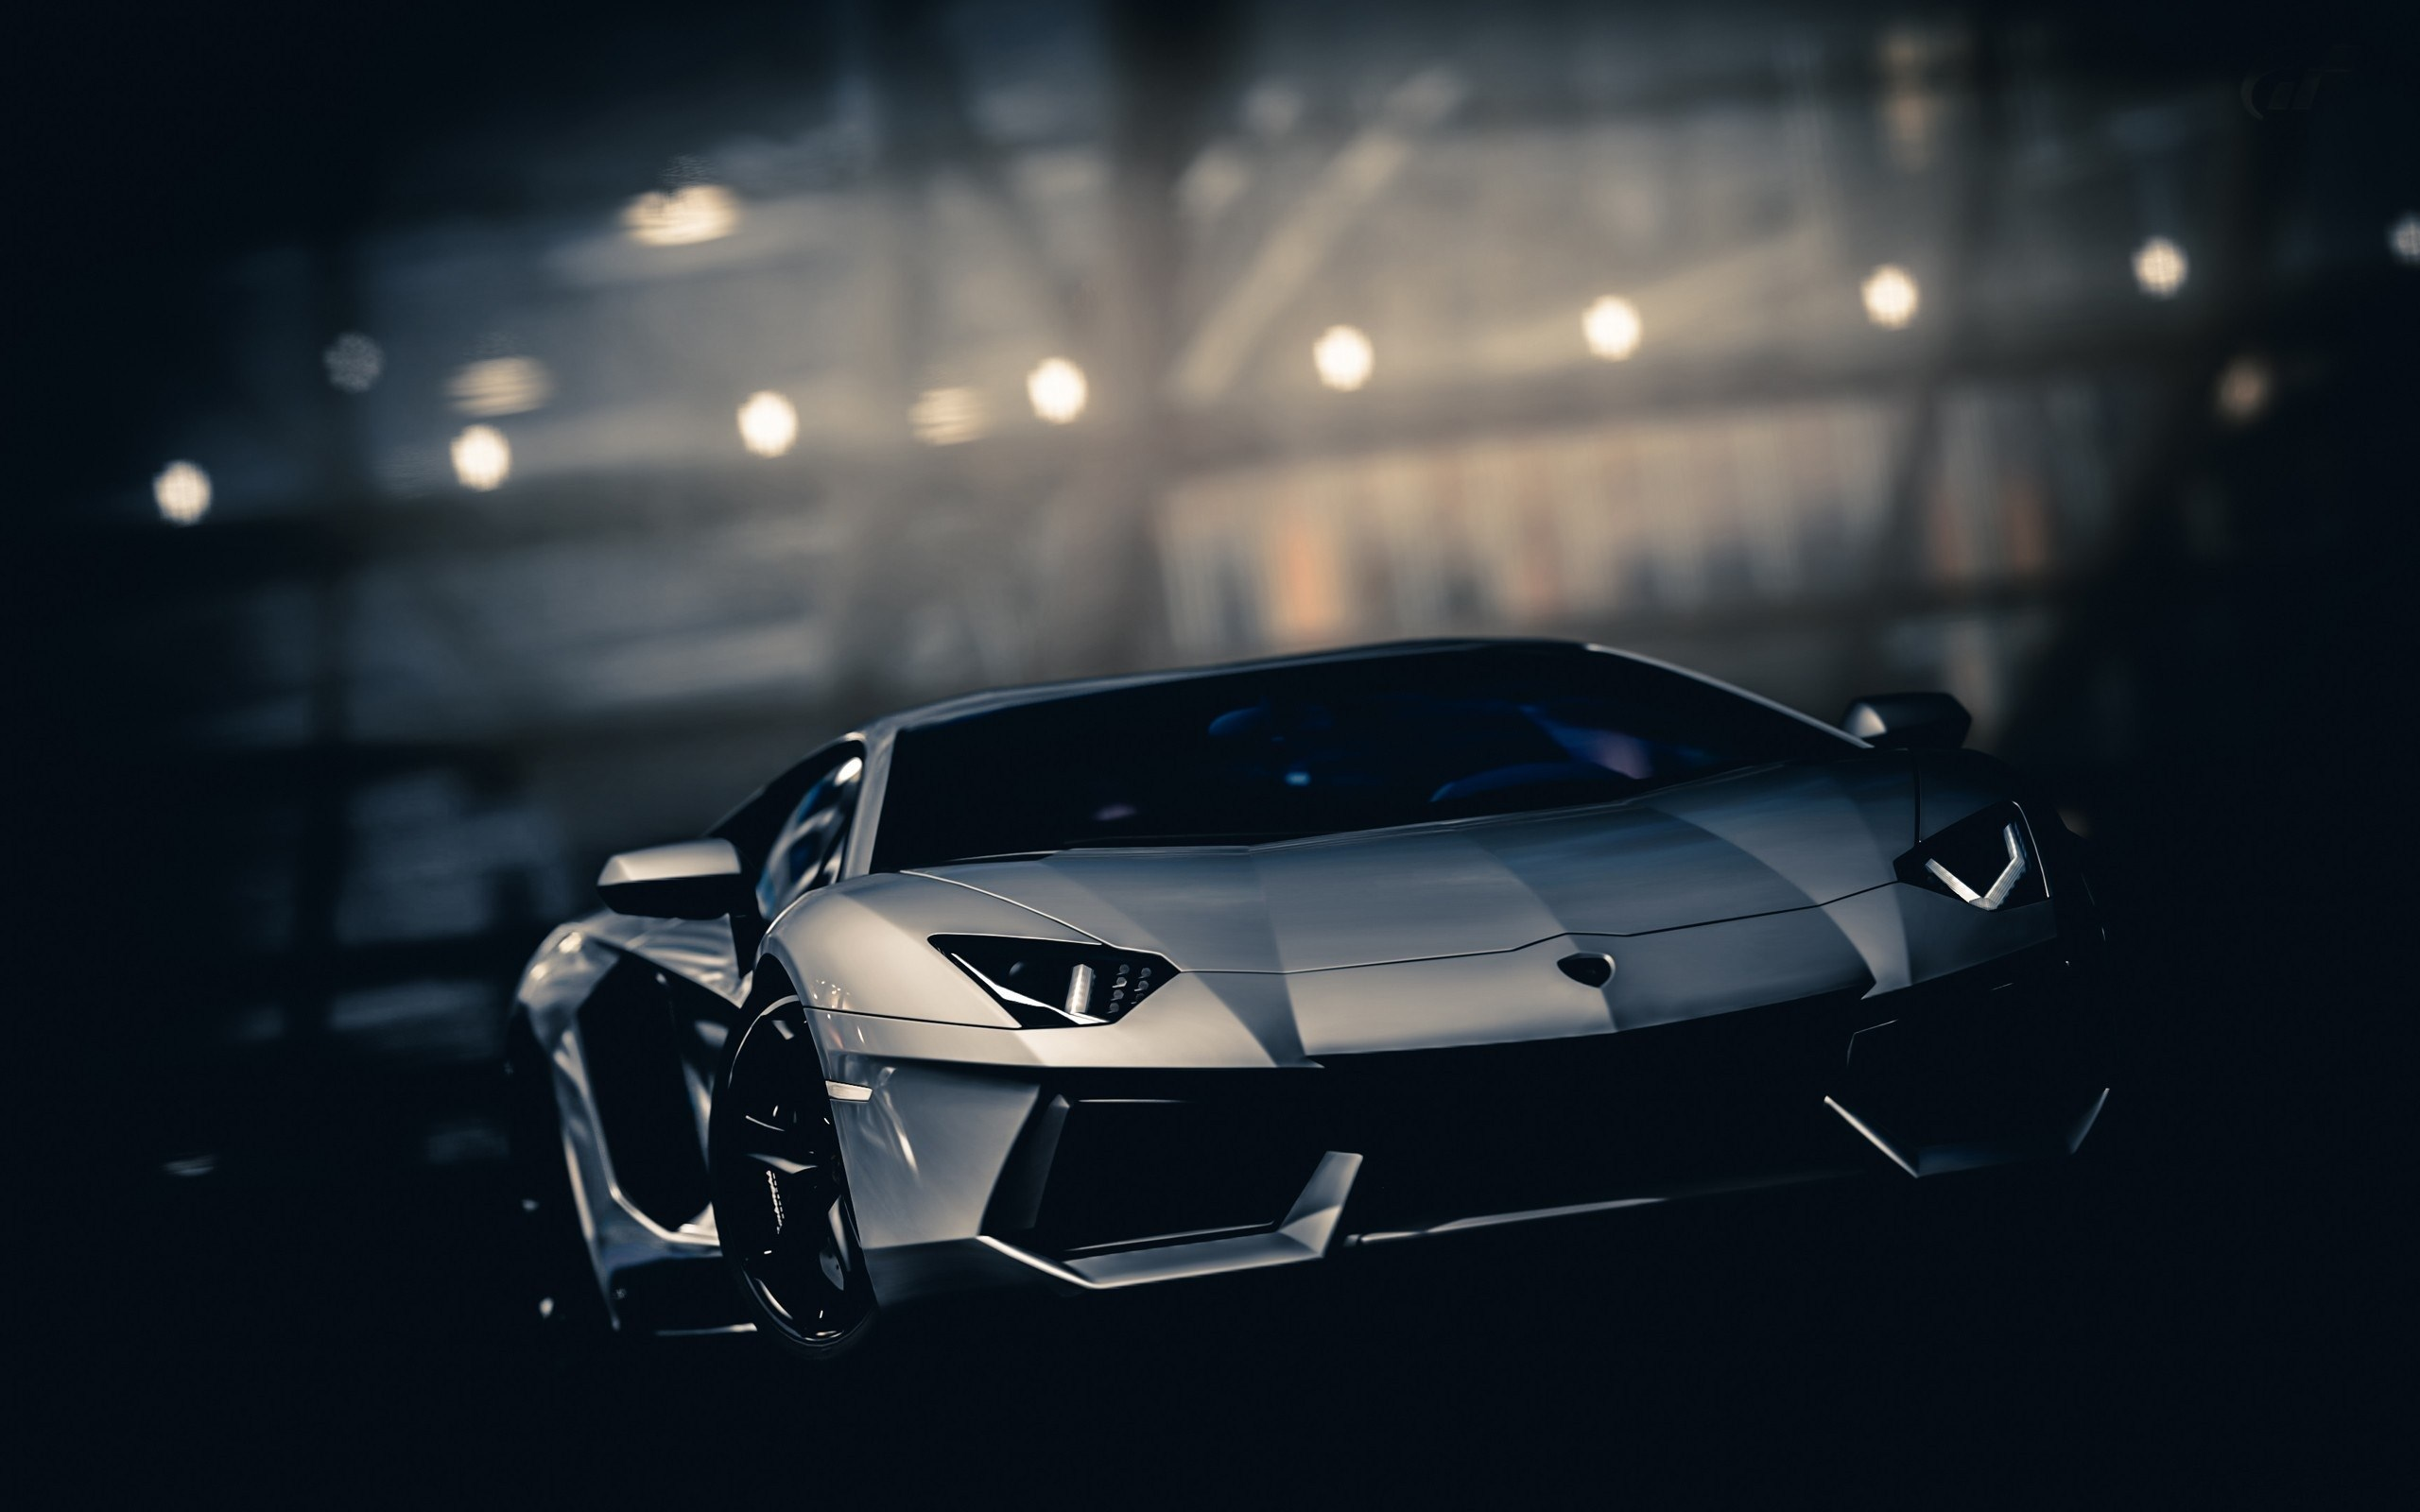 50 Super Sports Car Wallpapers Thatll Blow Your Desktop Away 2560x1600